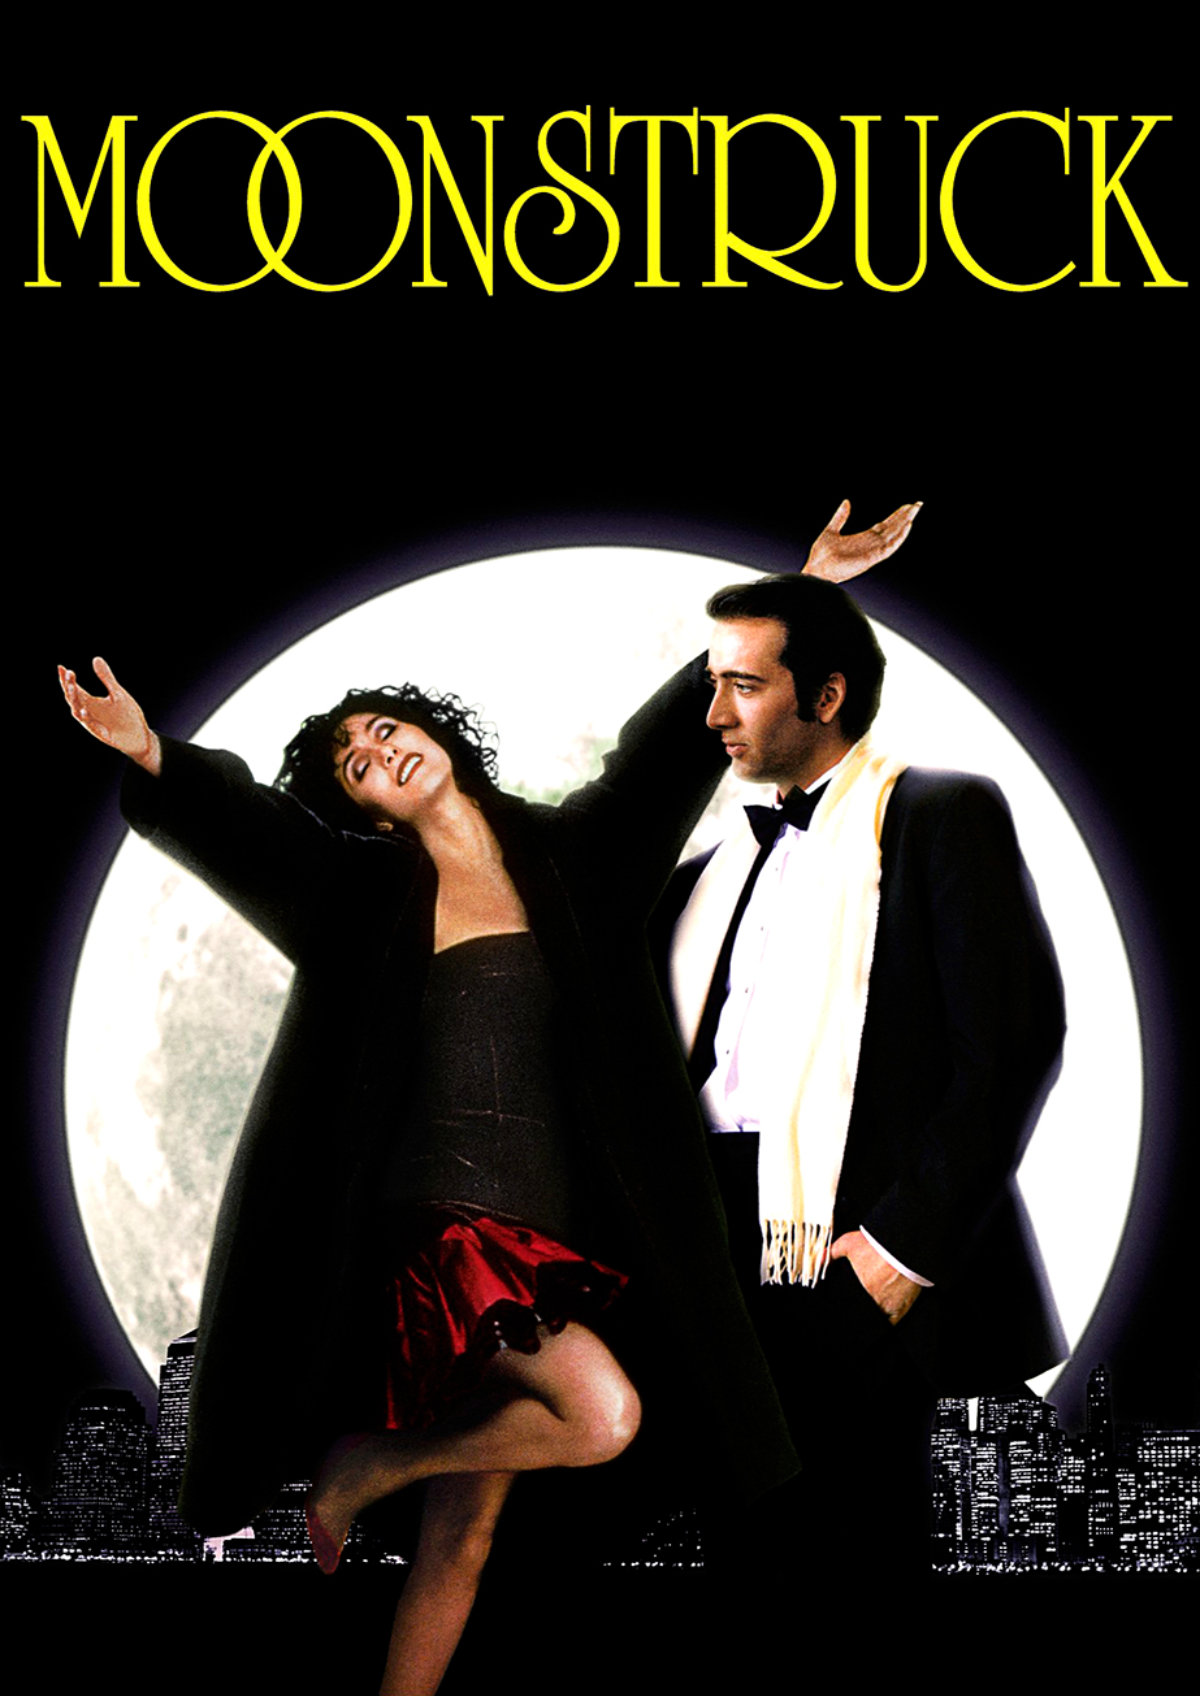 'Moonstruck' movie poster